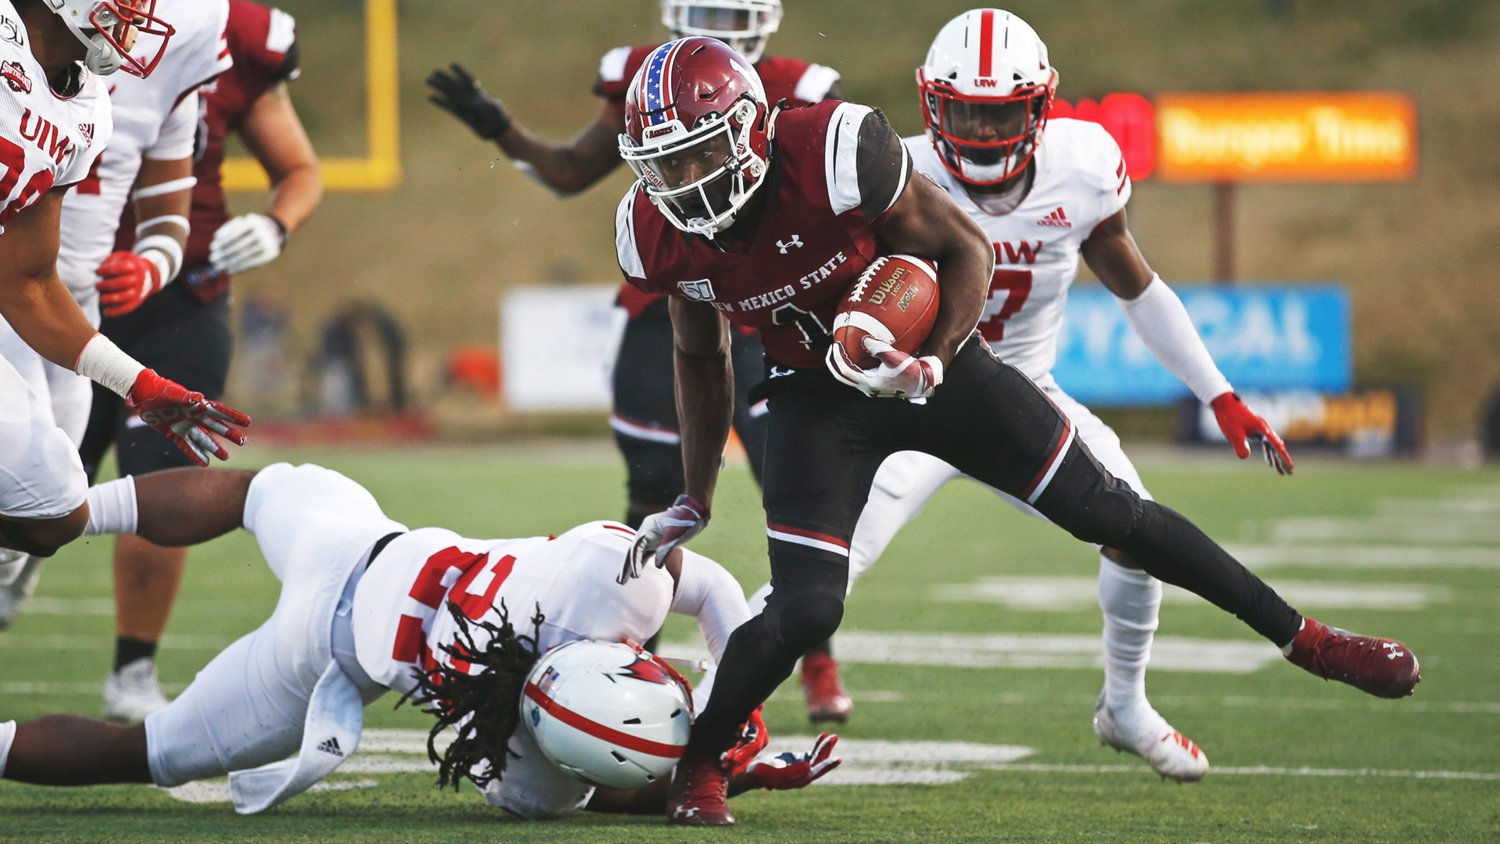 Jason Huntley had a field day against UIW with 174 yards rushing.